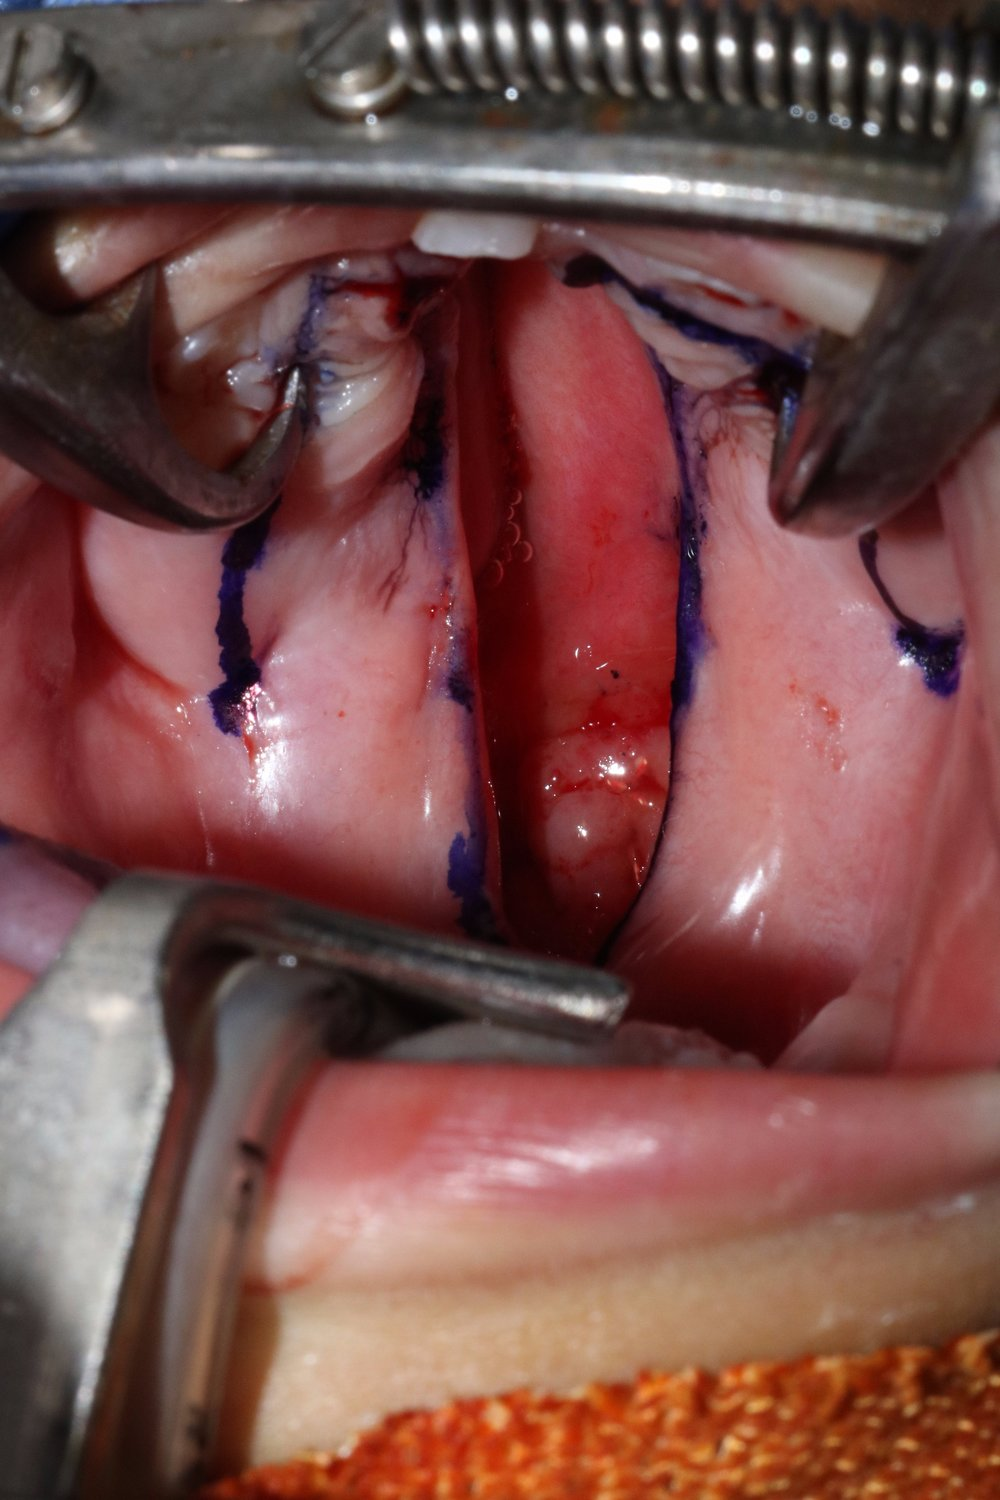 Primary Cleft of the Palate